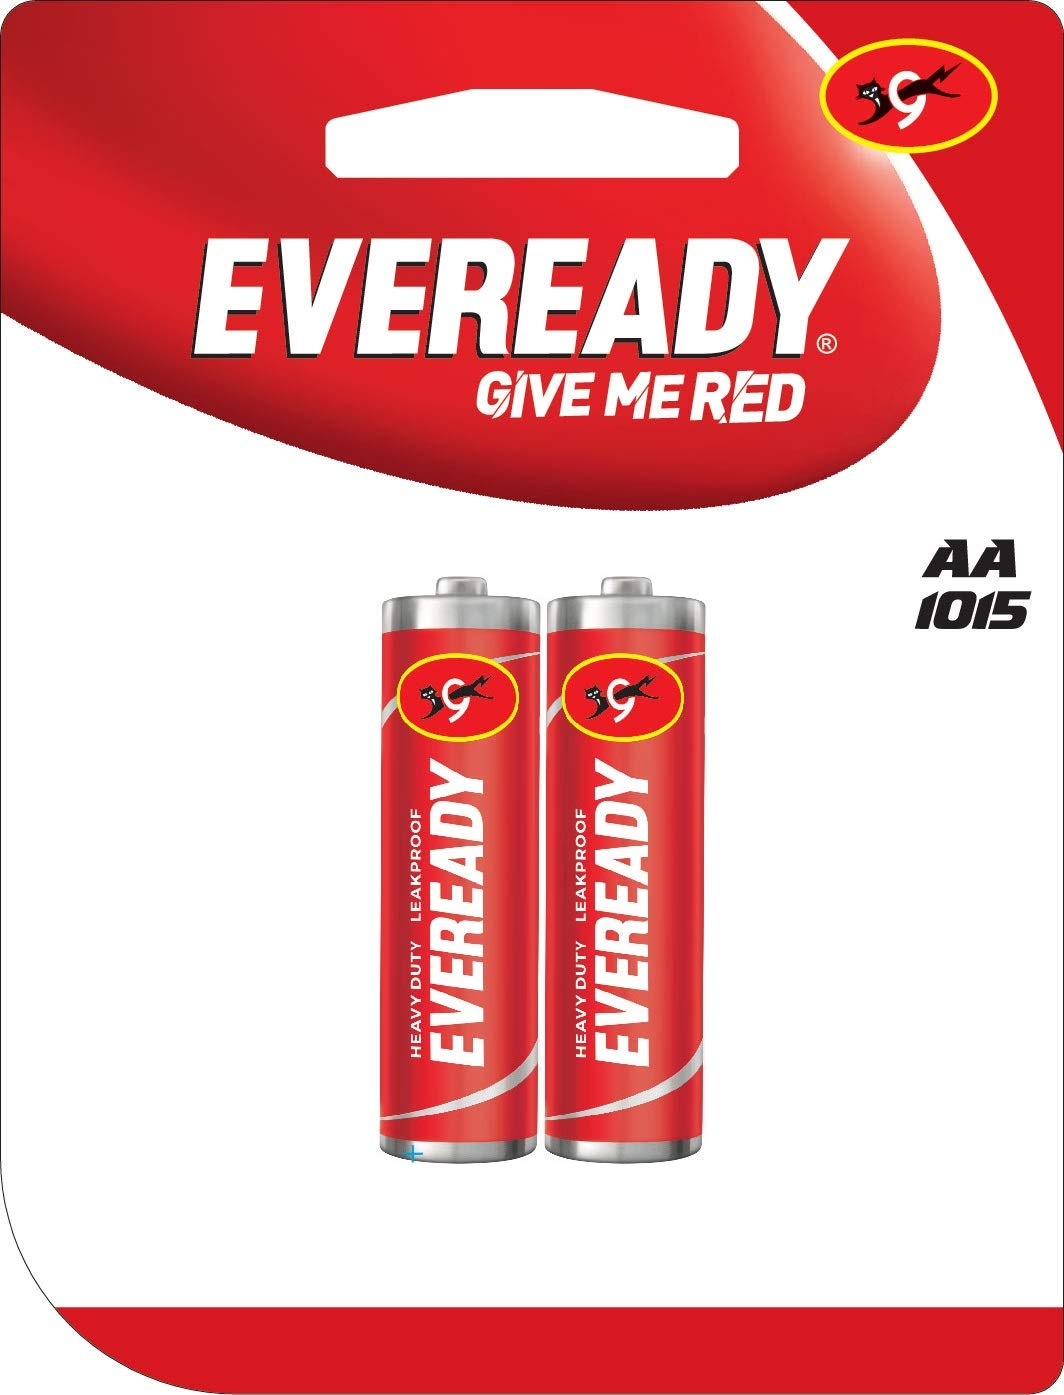 Eveready 1015 Carbon Zinc Aa Battery 2 Pieces Buy Online In Cayman Islands At Cayman Desertcart Com Productid 139060715